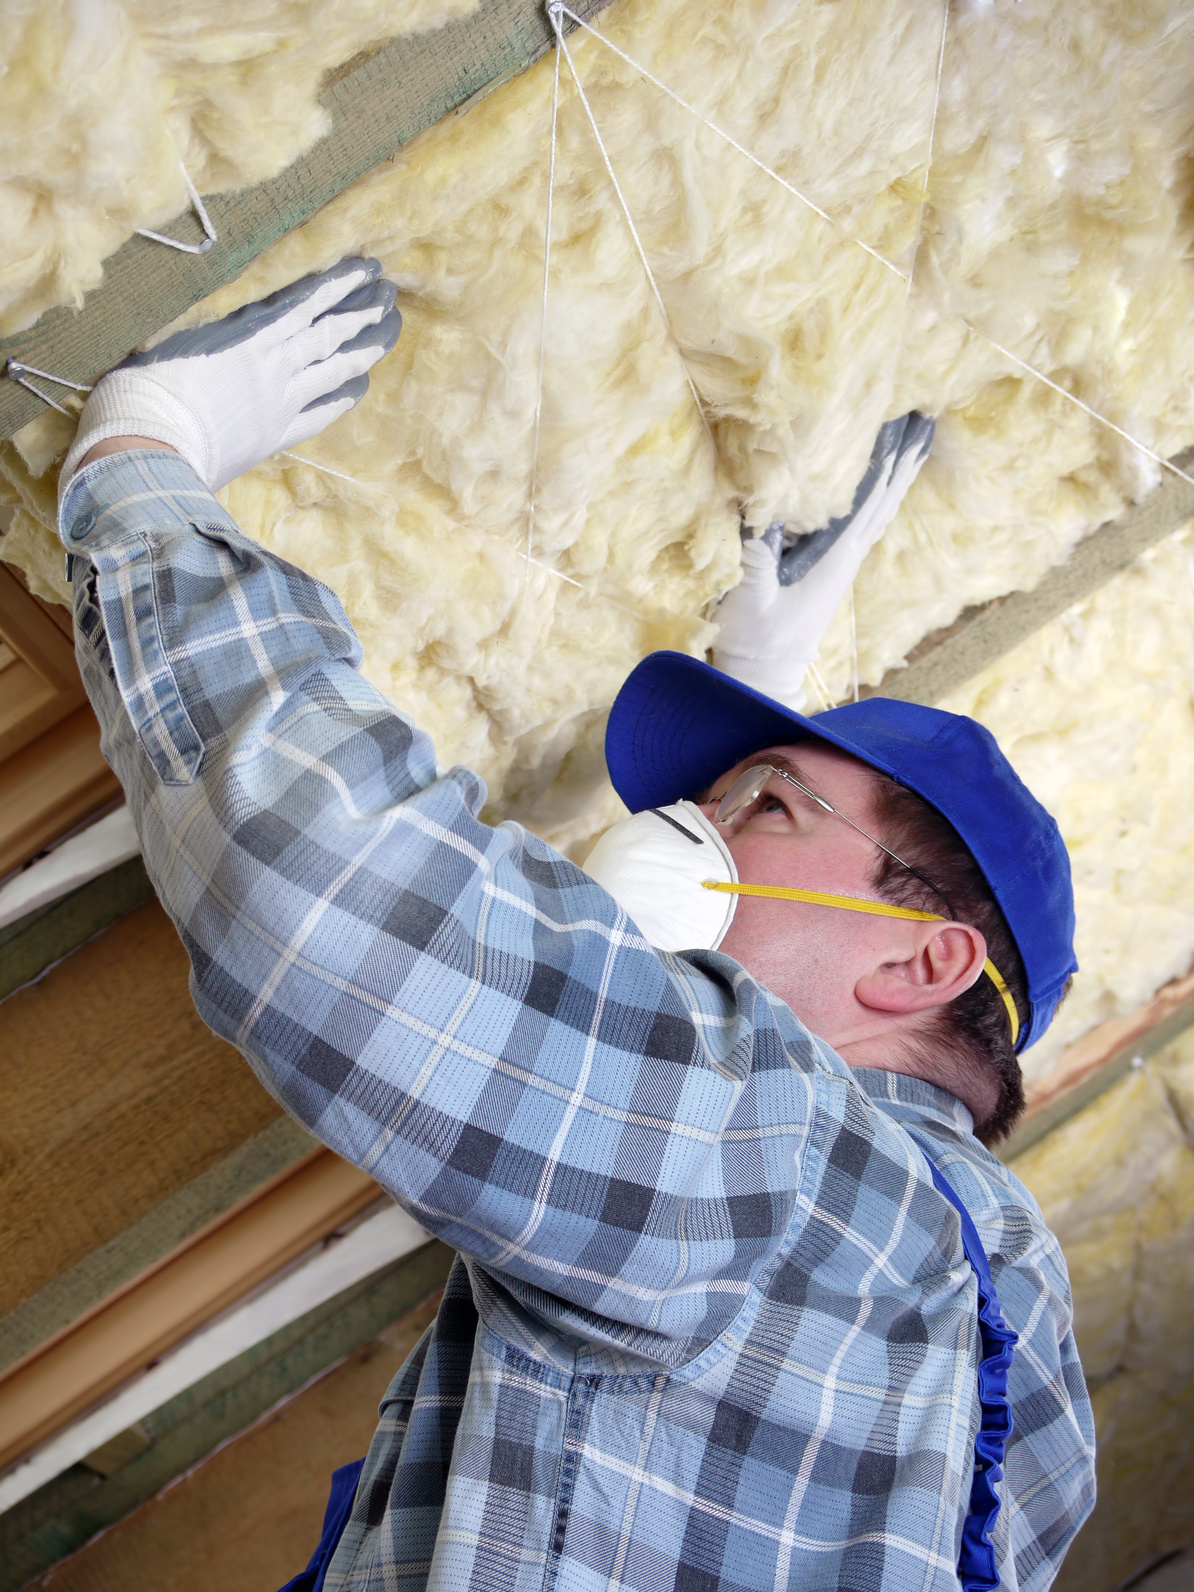 Checking the insulation of your building can help prevent extreme temperature changes inside the structure, which helps to protect pipes.